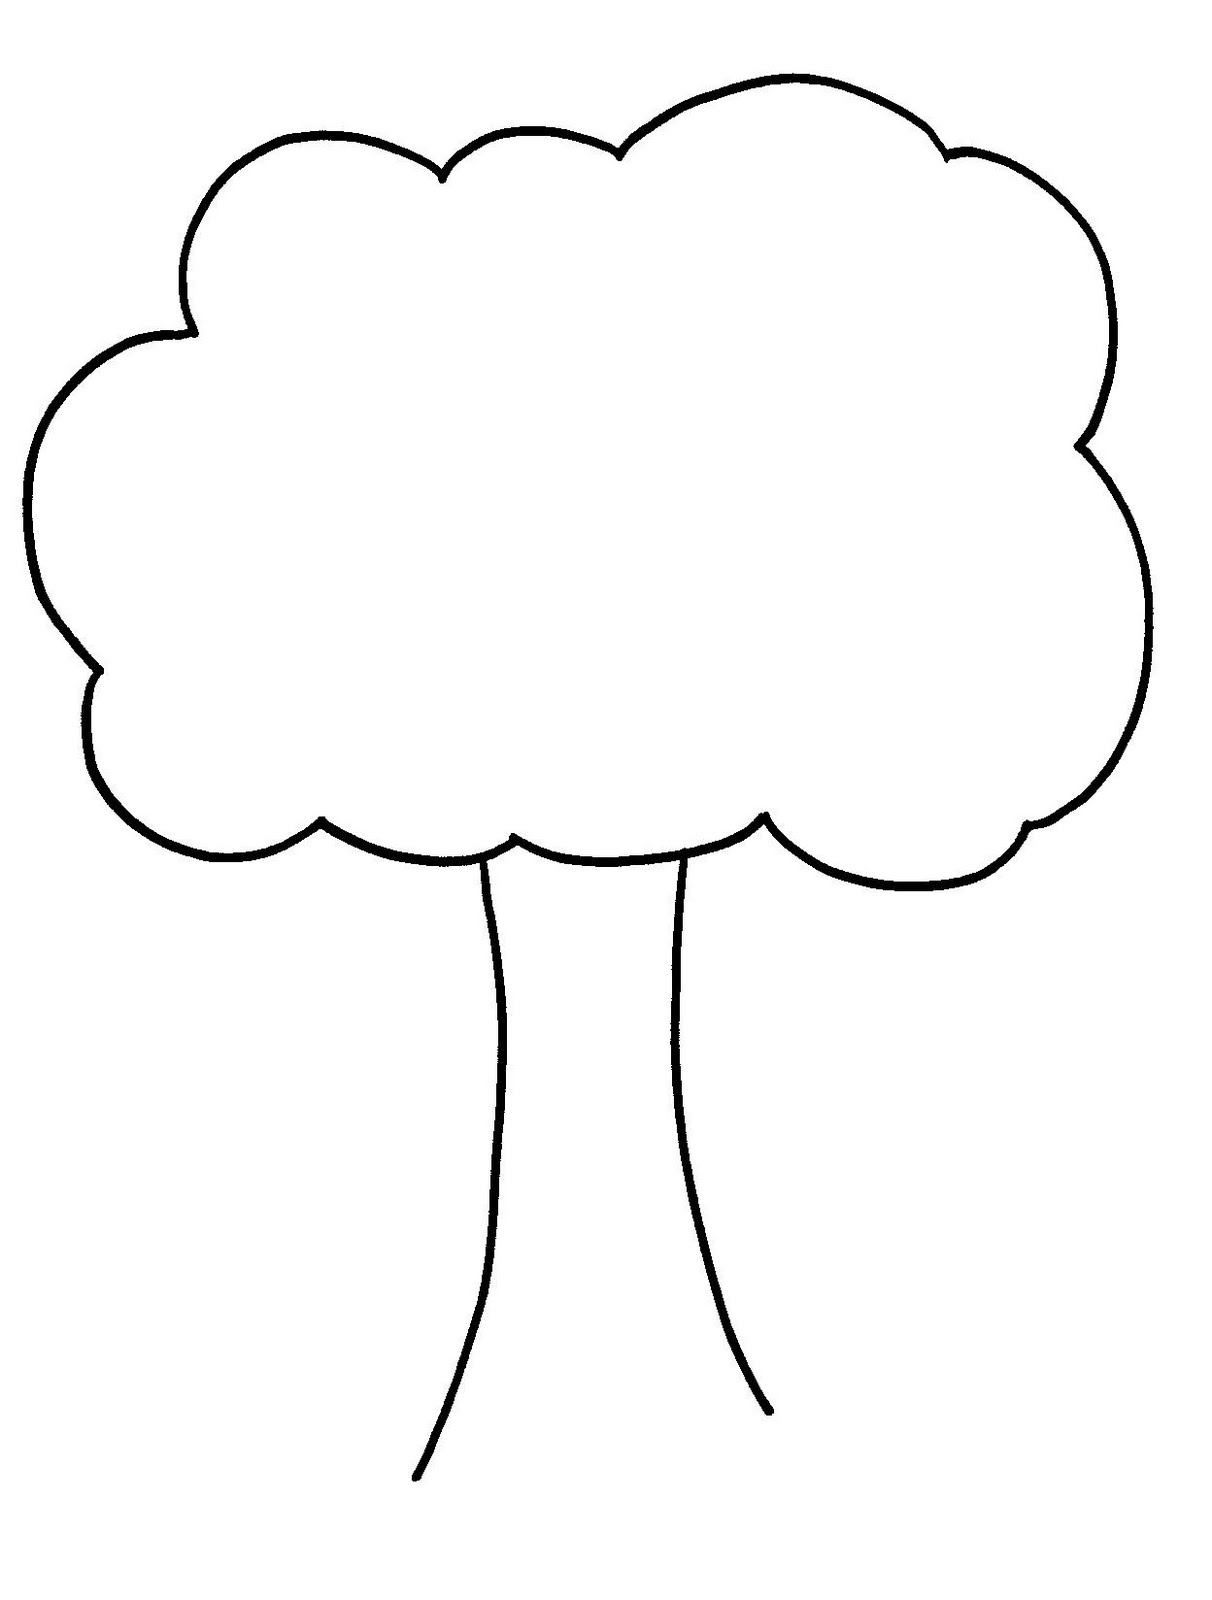 1212x1600 Tree Outline With Leaves Clipart